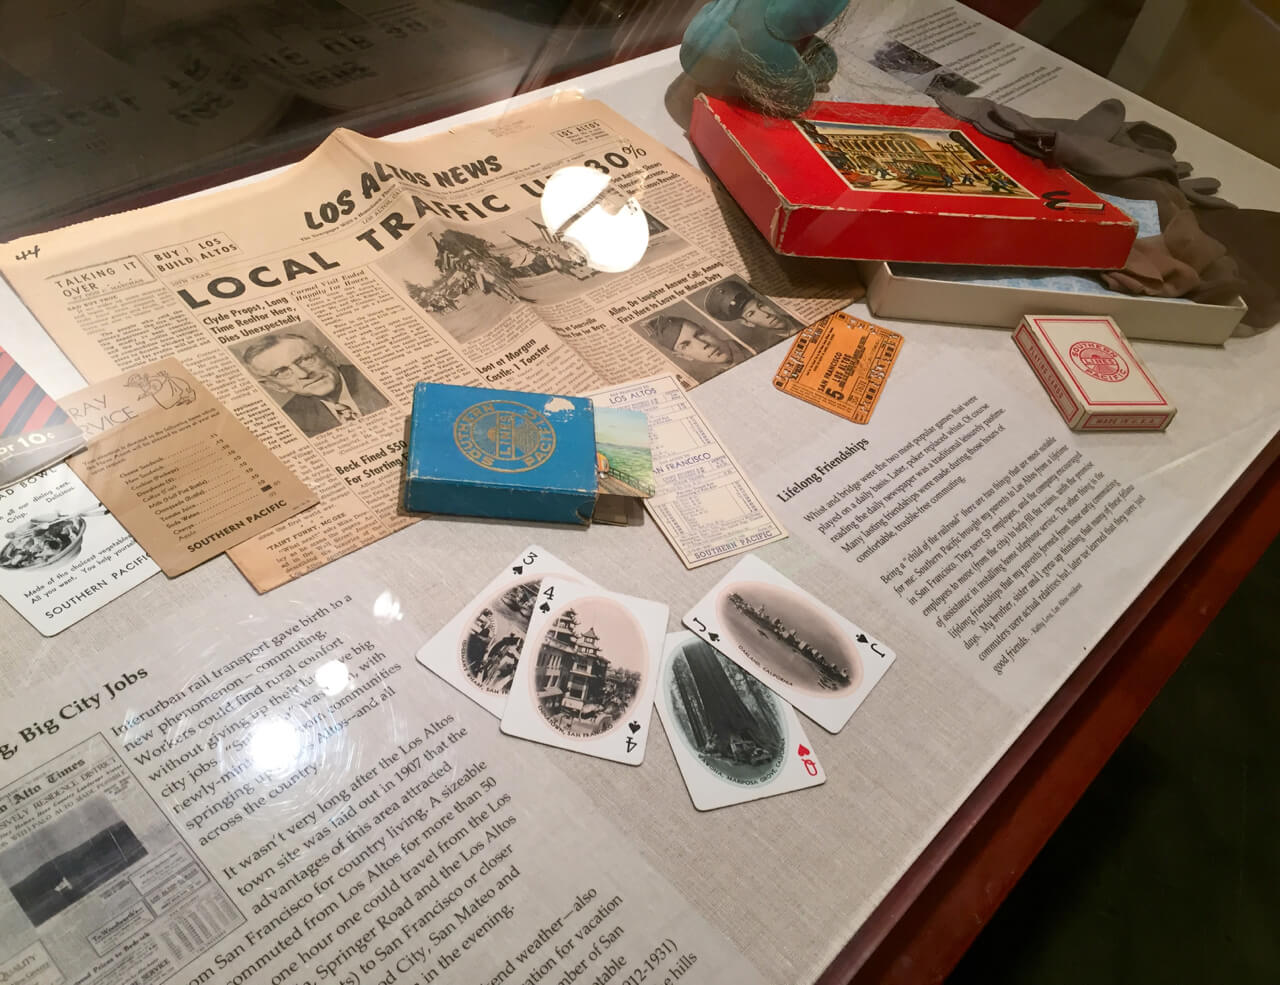 13-Los-Altos-History-Museum-The Sibbett Group-Southern Pacific.jpg